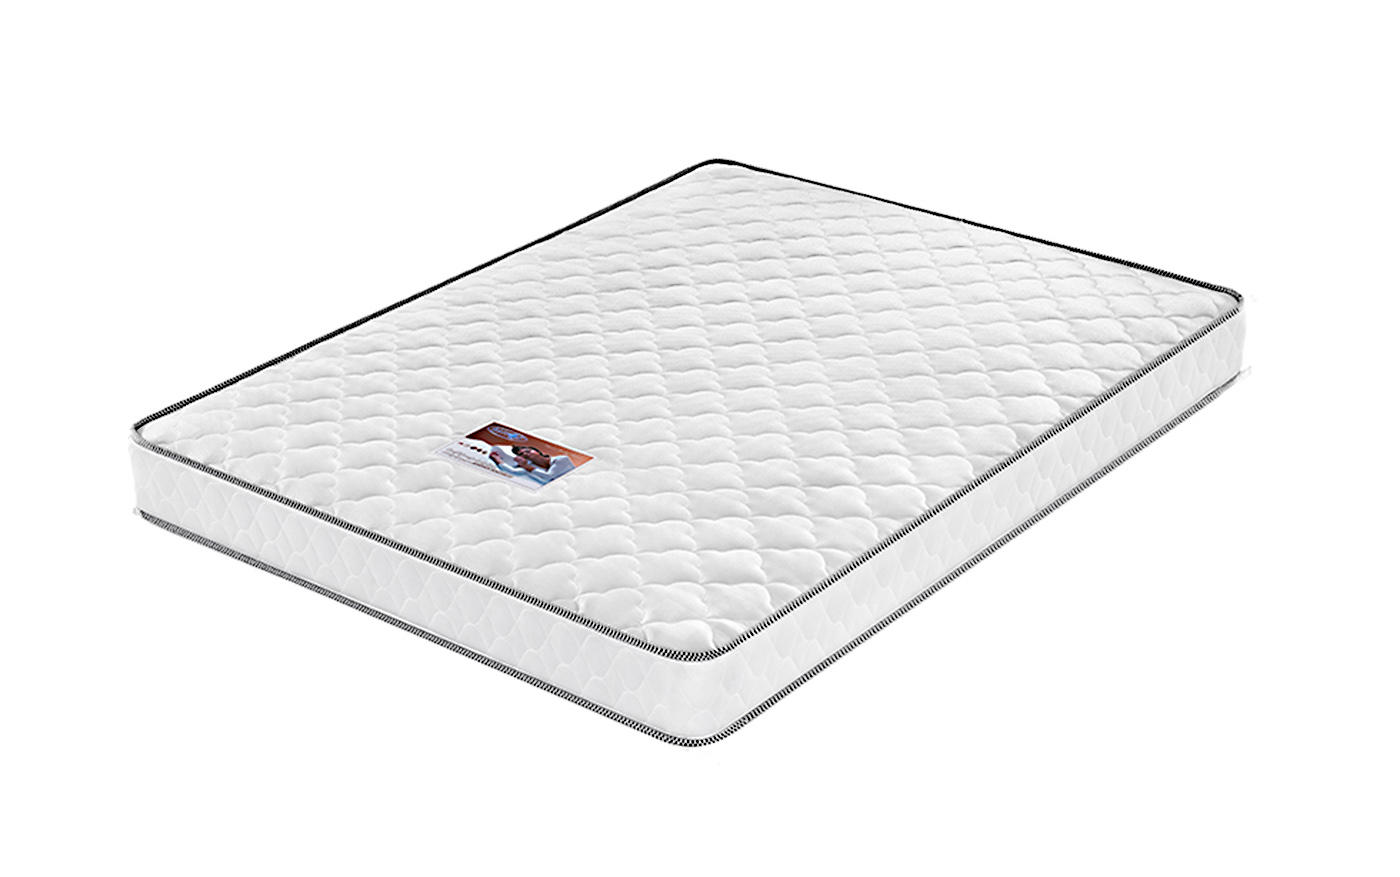 Cheap full size roll up firm bonnell spring mattress back pain